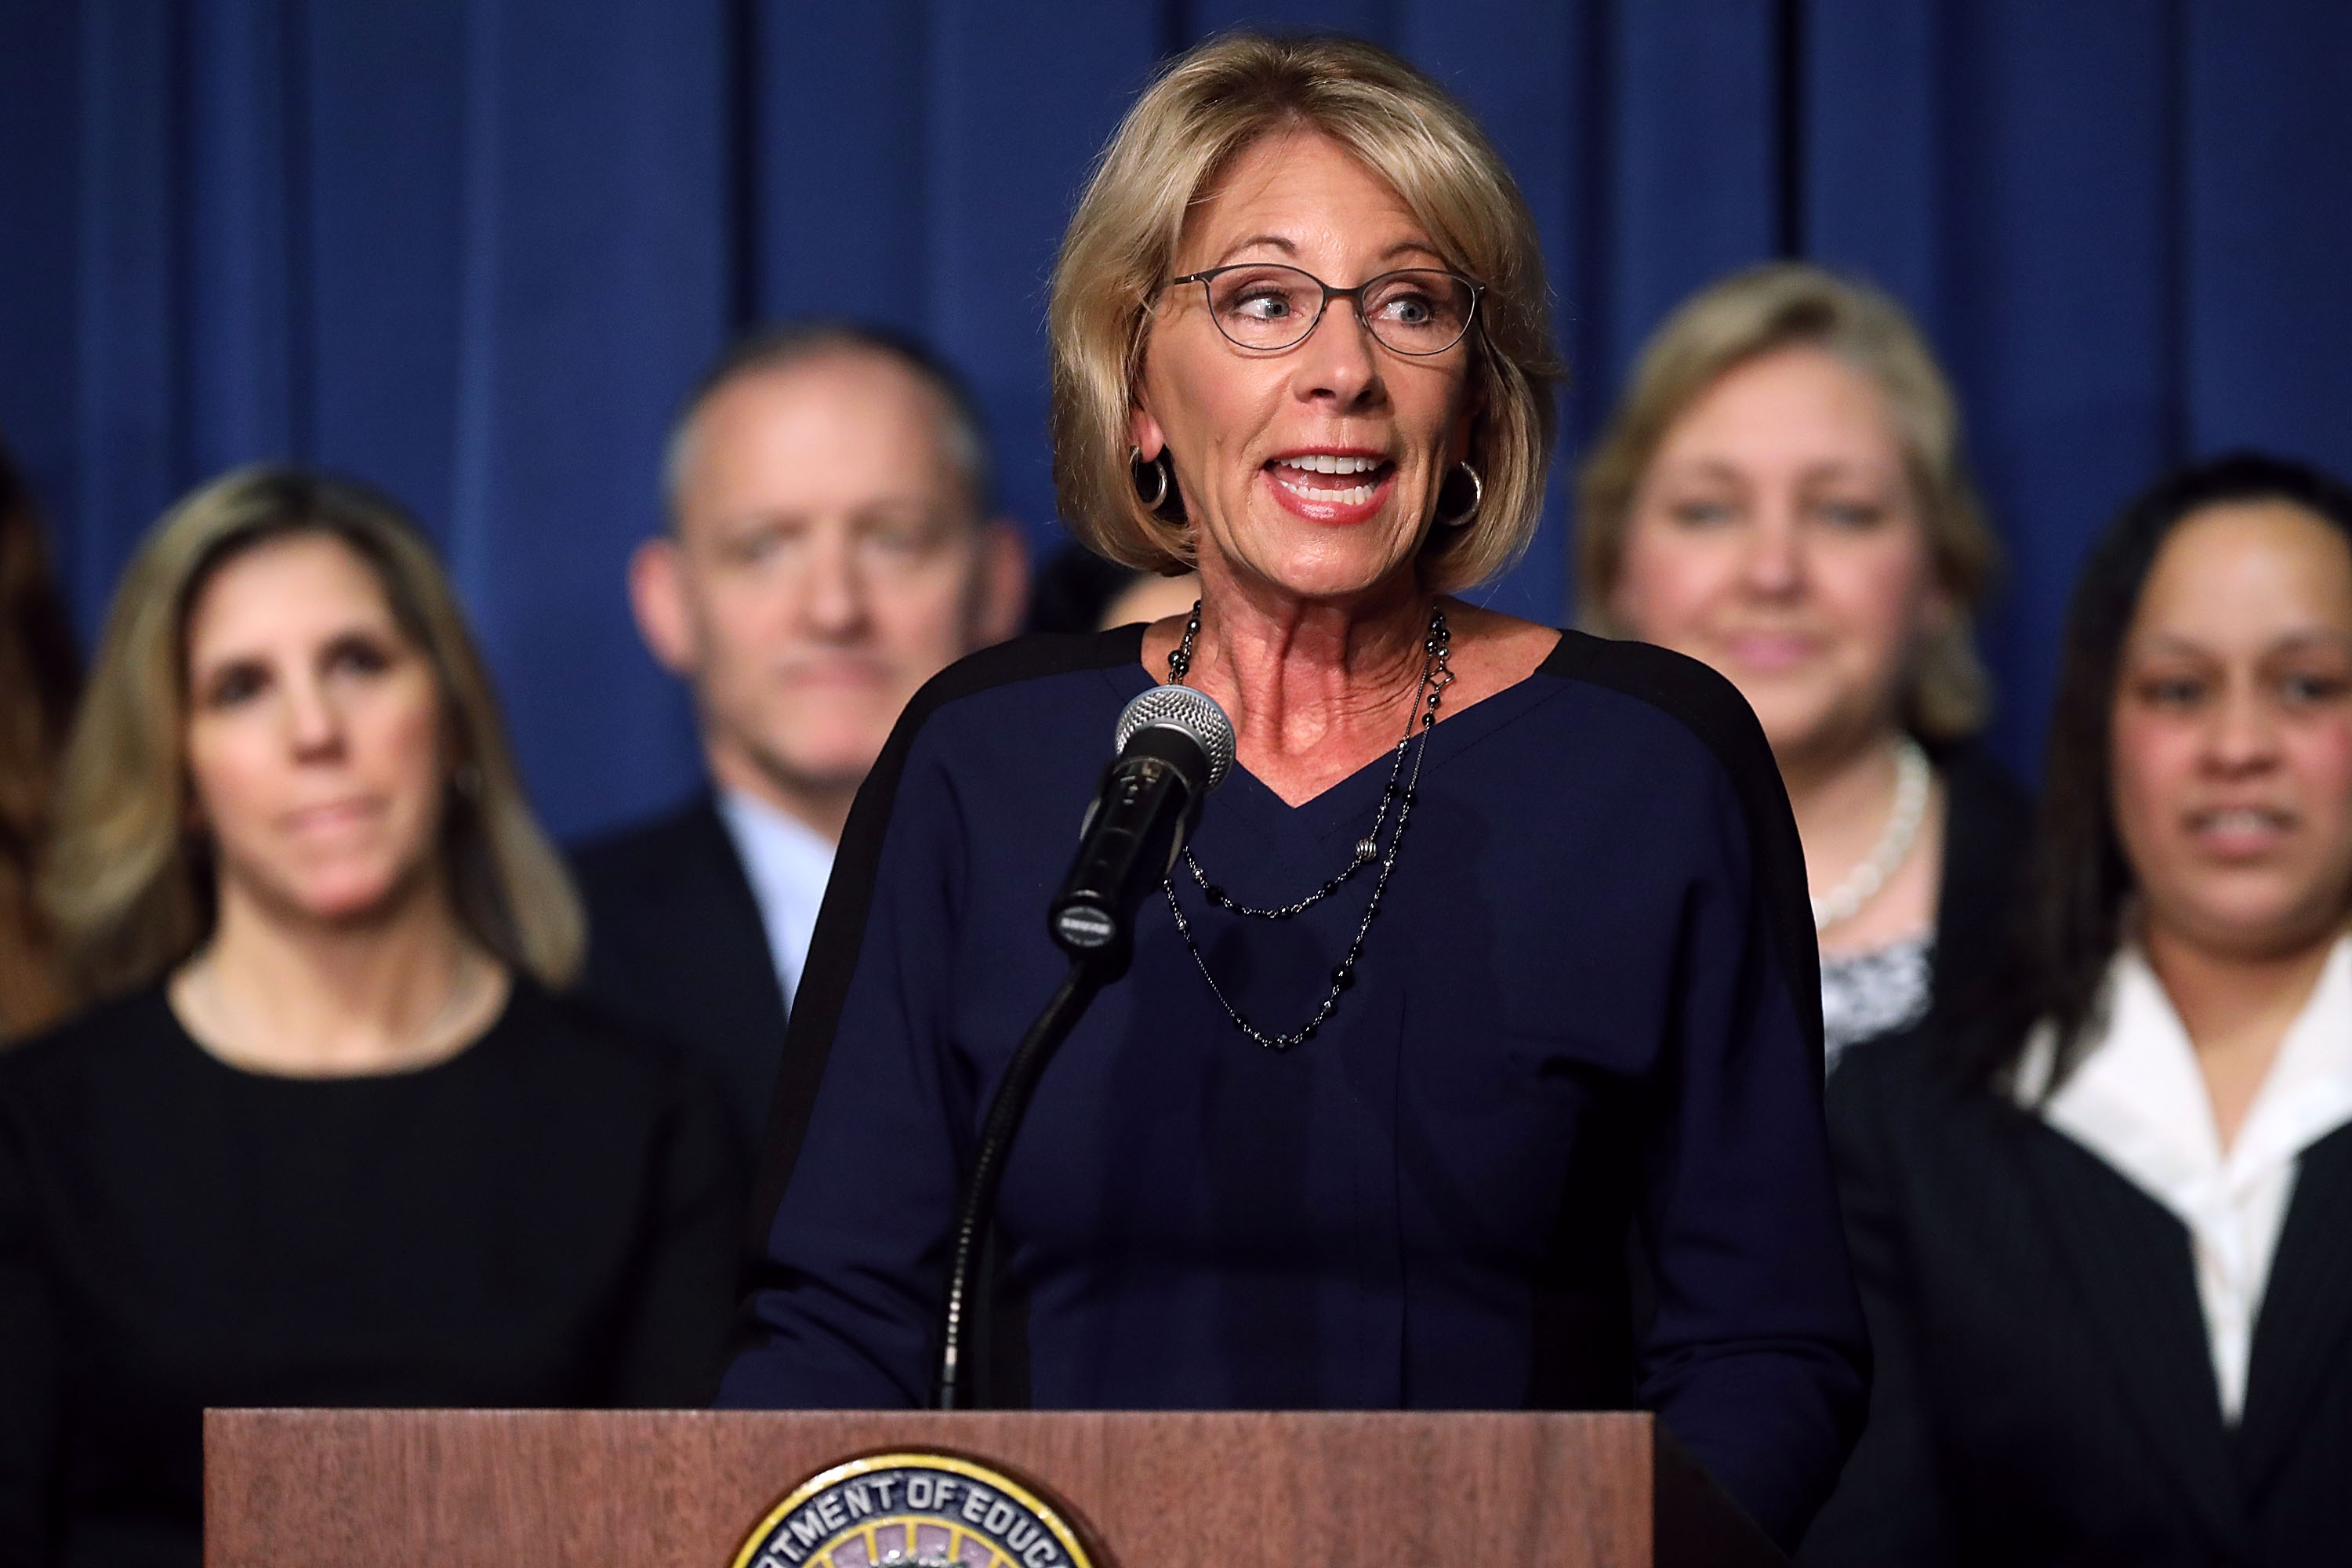 Education Secretary Betsy DeVos delivers remarks to employees on her first day on the job at the Department of Education February 8, 2017 in Washington, DC.